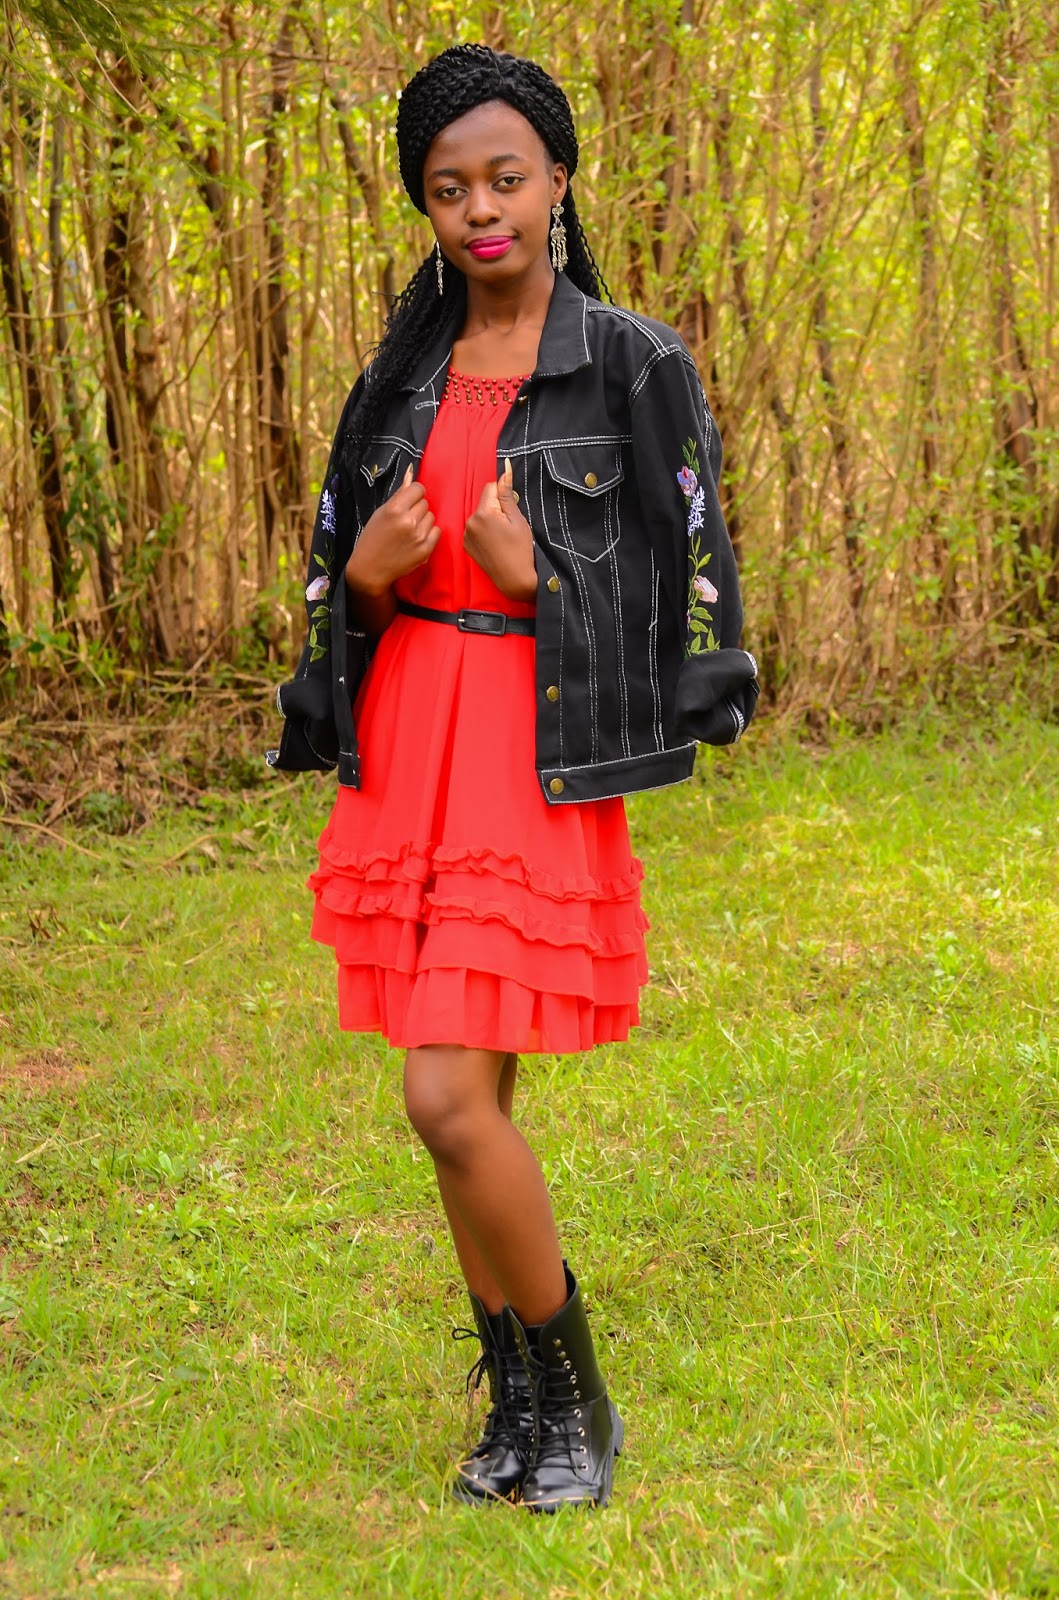 75b822efea84 Wearing An Embroidered Black Denim Jacket Outfit With A Dress